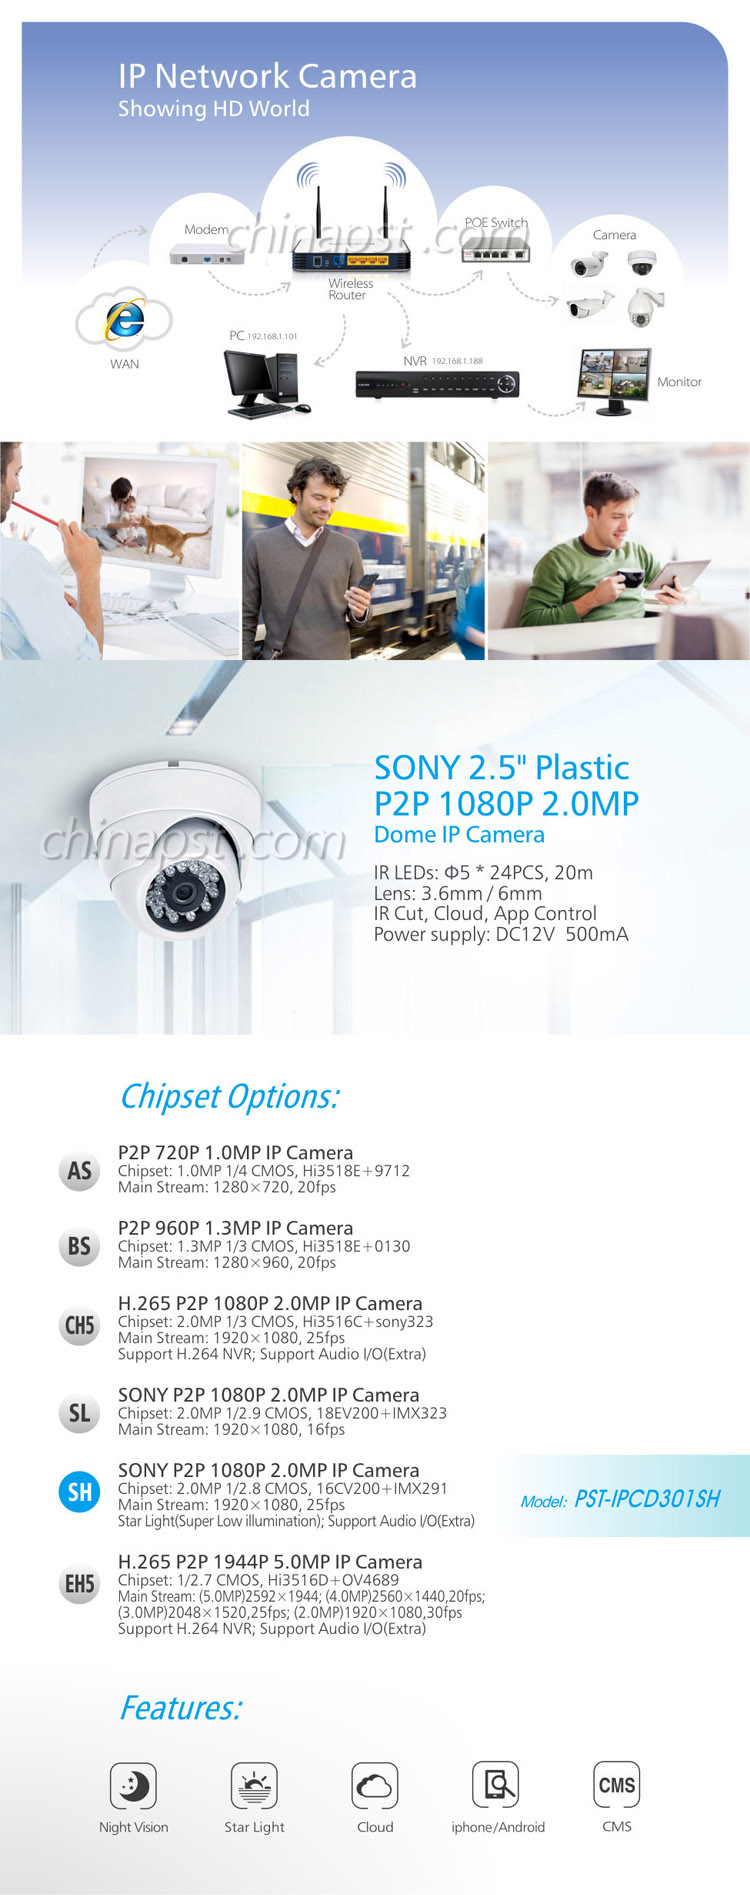 SONY P2P 2.0MP Super Lage Verlichting Video Conference Camera PST-IPCD301SH